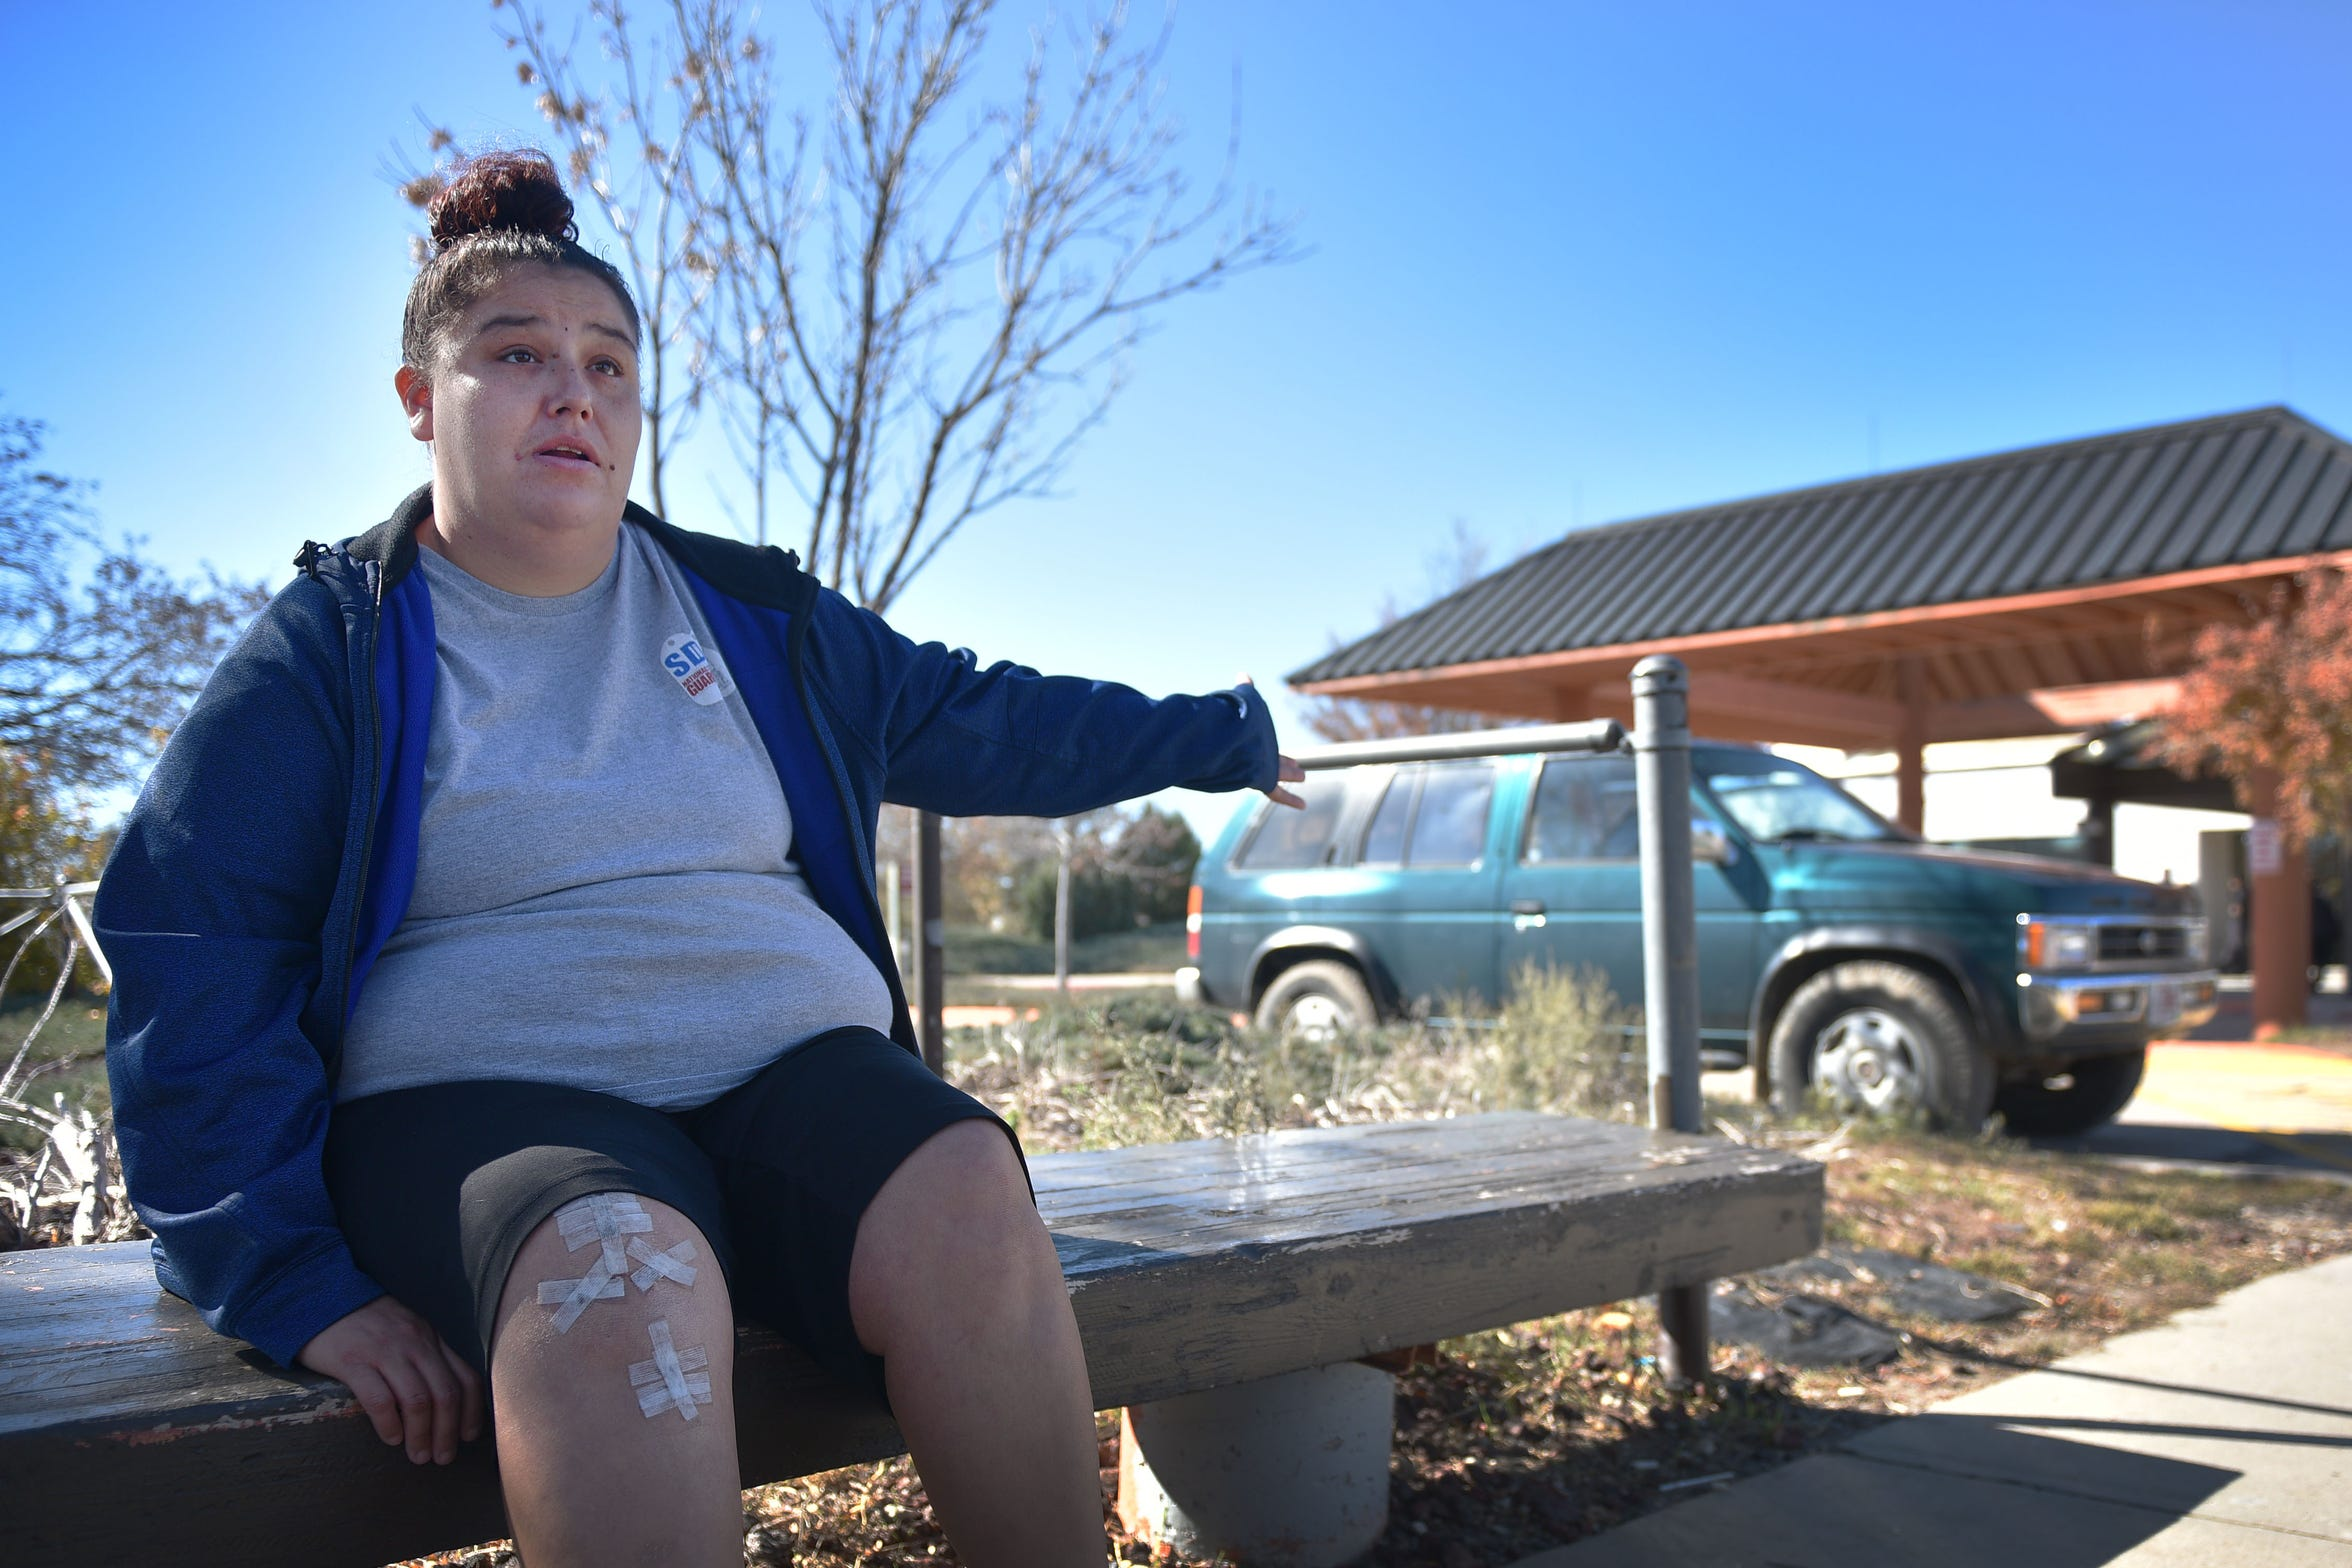 Nicol Burow, 30, talks about her experience with the Rosebud Indian Health Service hospital, Oct. 17, in Rosebud. Burow said she went to the hospital after she fell and hurt her knee.  After a misdiagnosis, she returned a month later and was told she needed surgery.